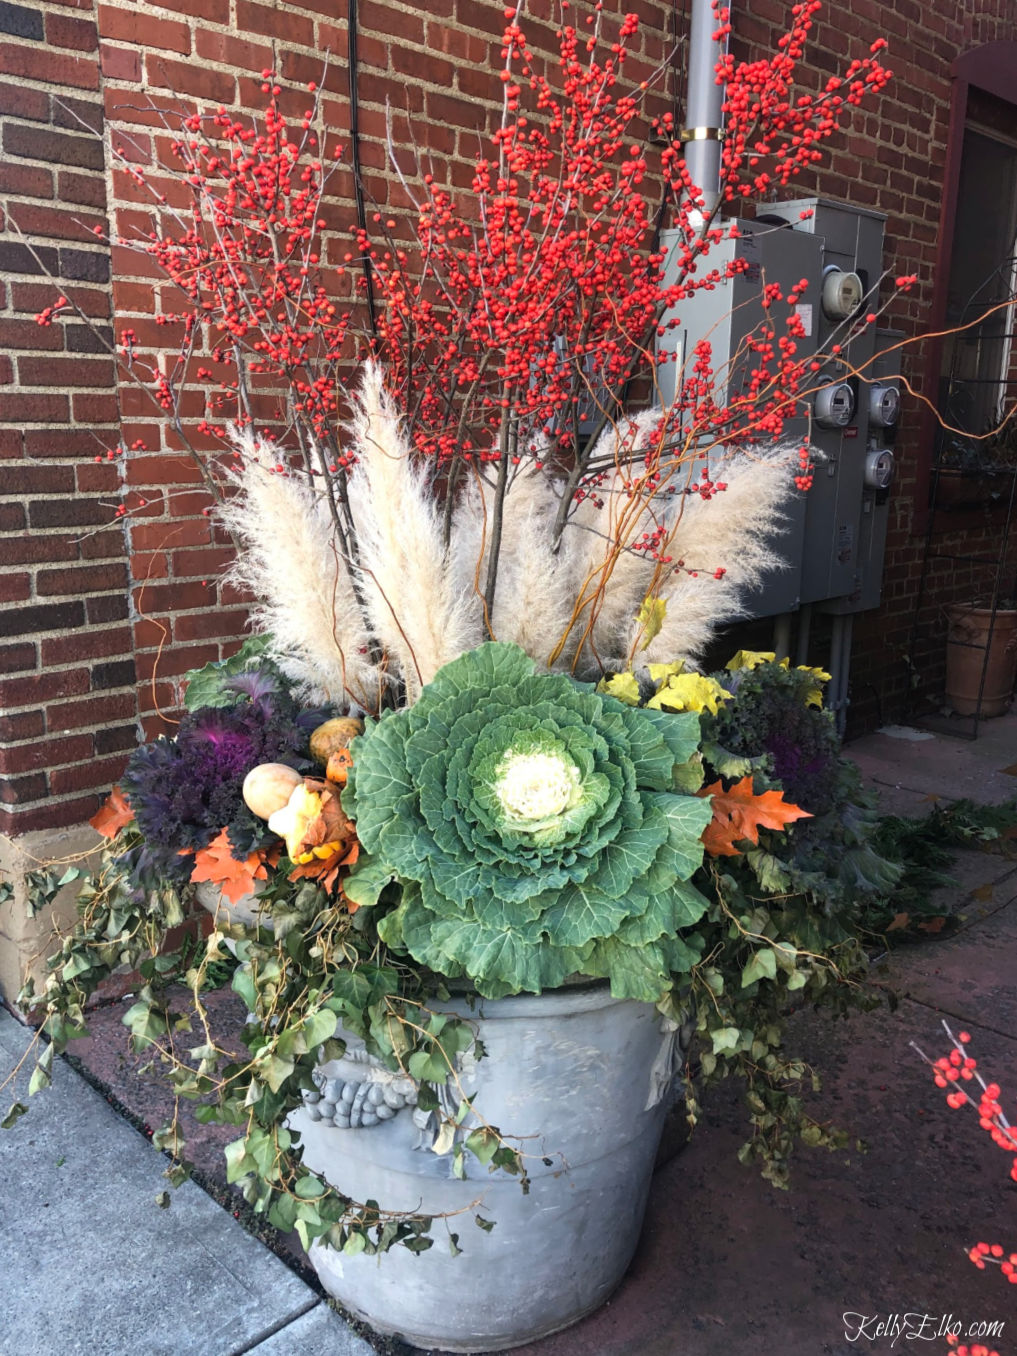 Beautiful Winter Planter of pampas grass, winter red berries, purple and green kale and trailing ivy kellyelko.com #planters #christmasplanter #winterplanter #fallplanter #gardening #gardeners #containergardens #containergardening #wintergardens #fallgardens #pampasgrass #kellyelko